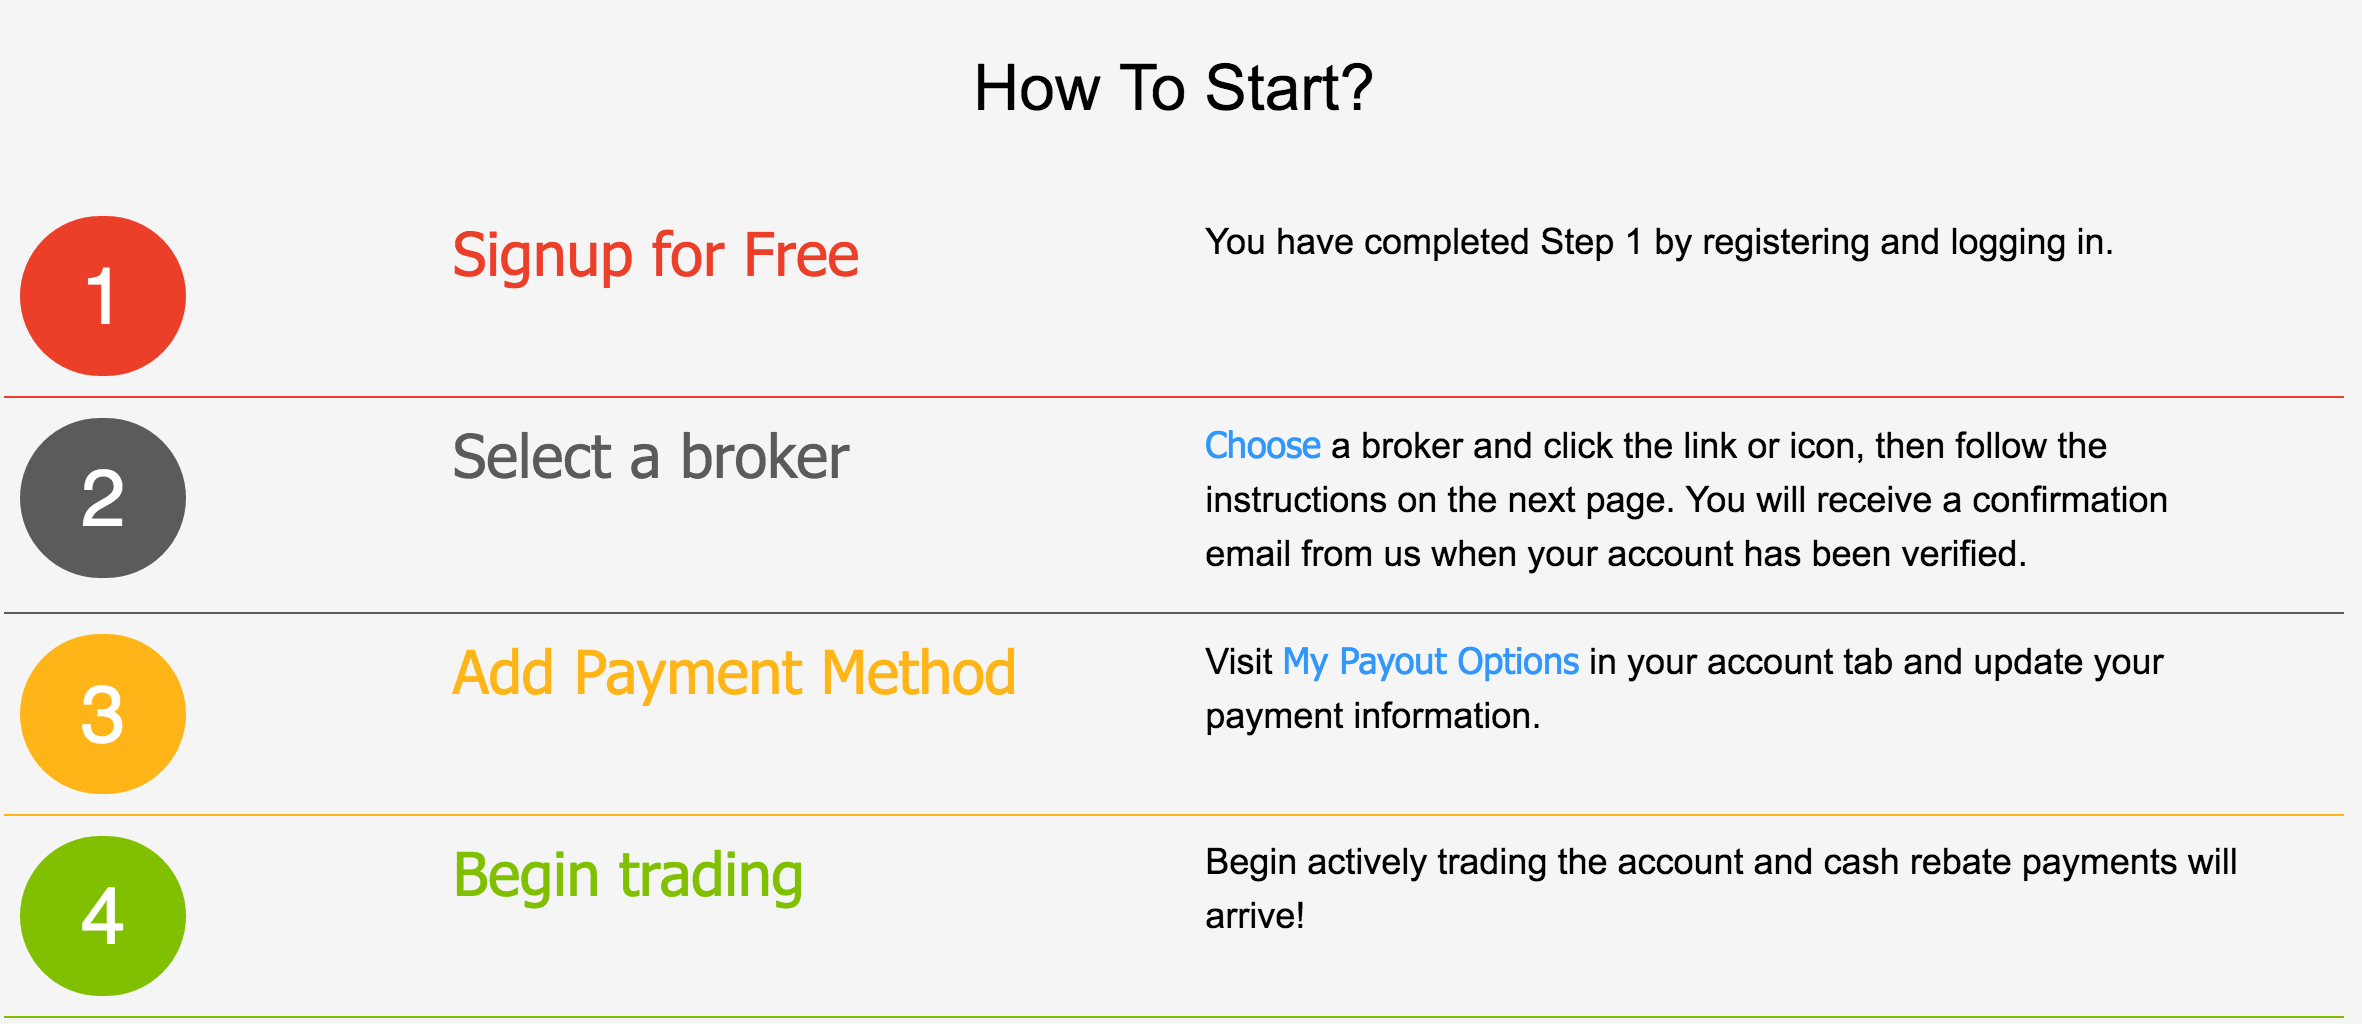 Forex Rebate Program - 4 simple steps to start earning cash back rebates from your trades